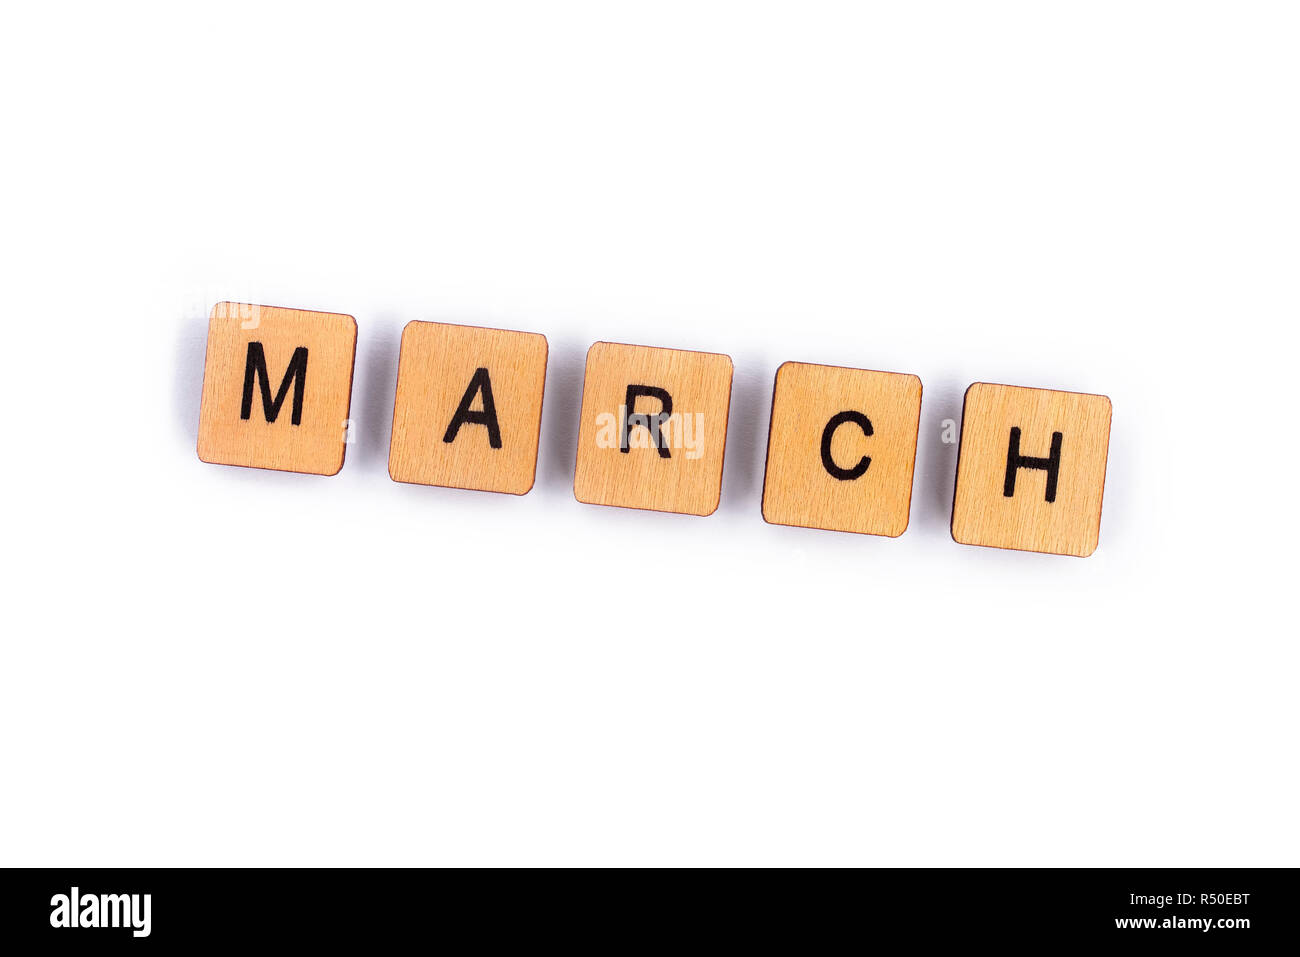 March Spelt With Wooden Letter Tiles Over A Plain White